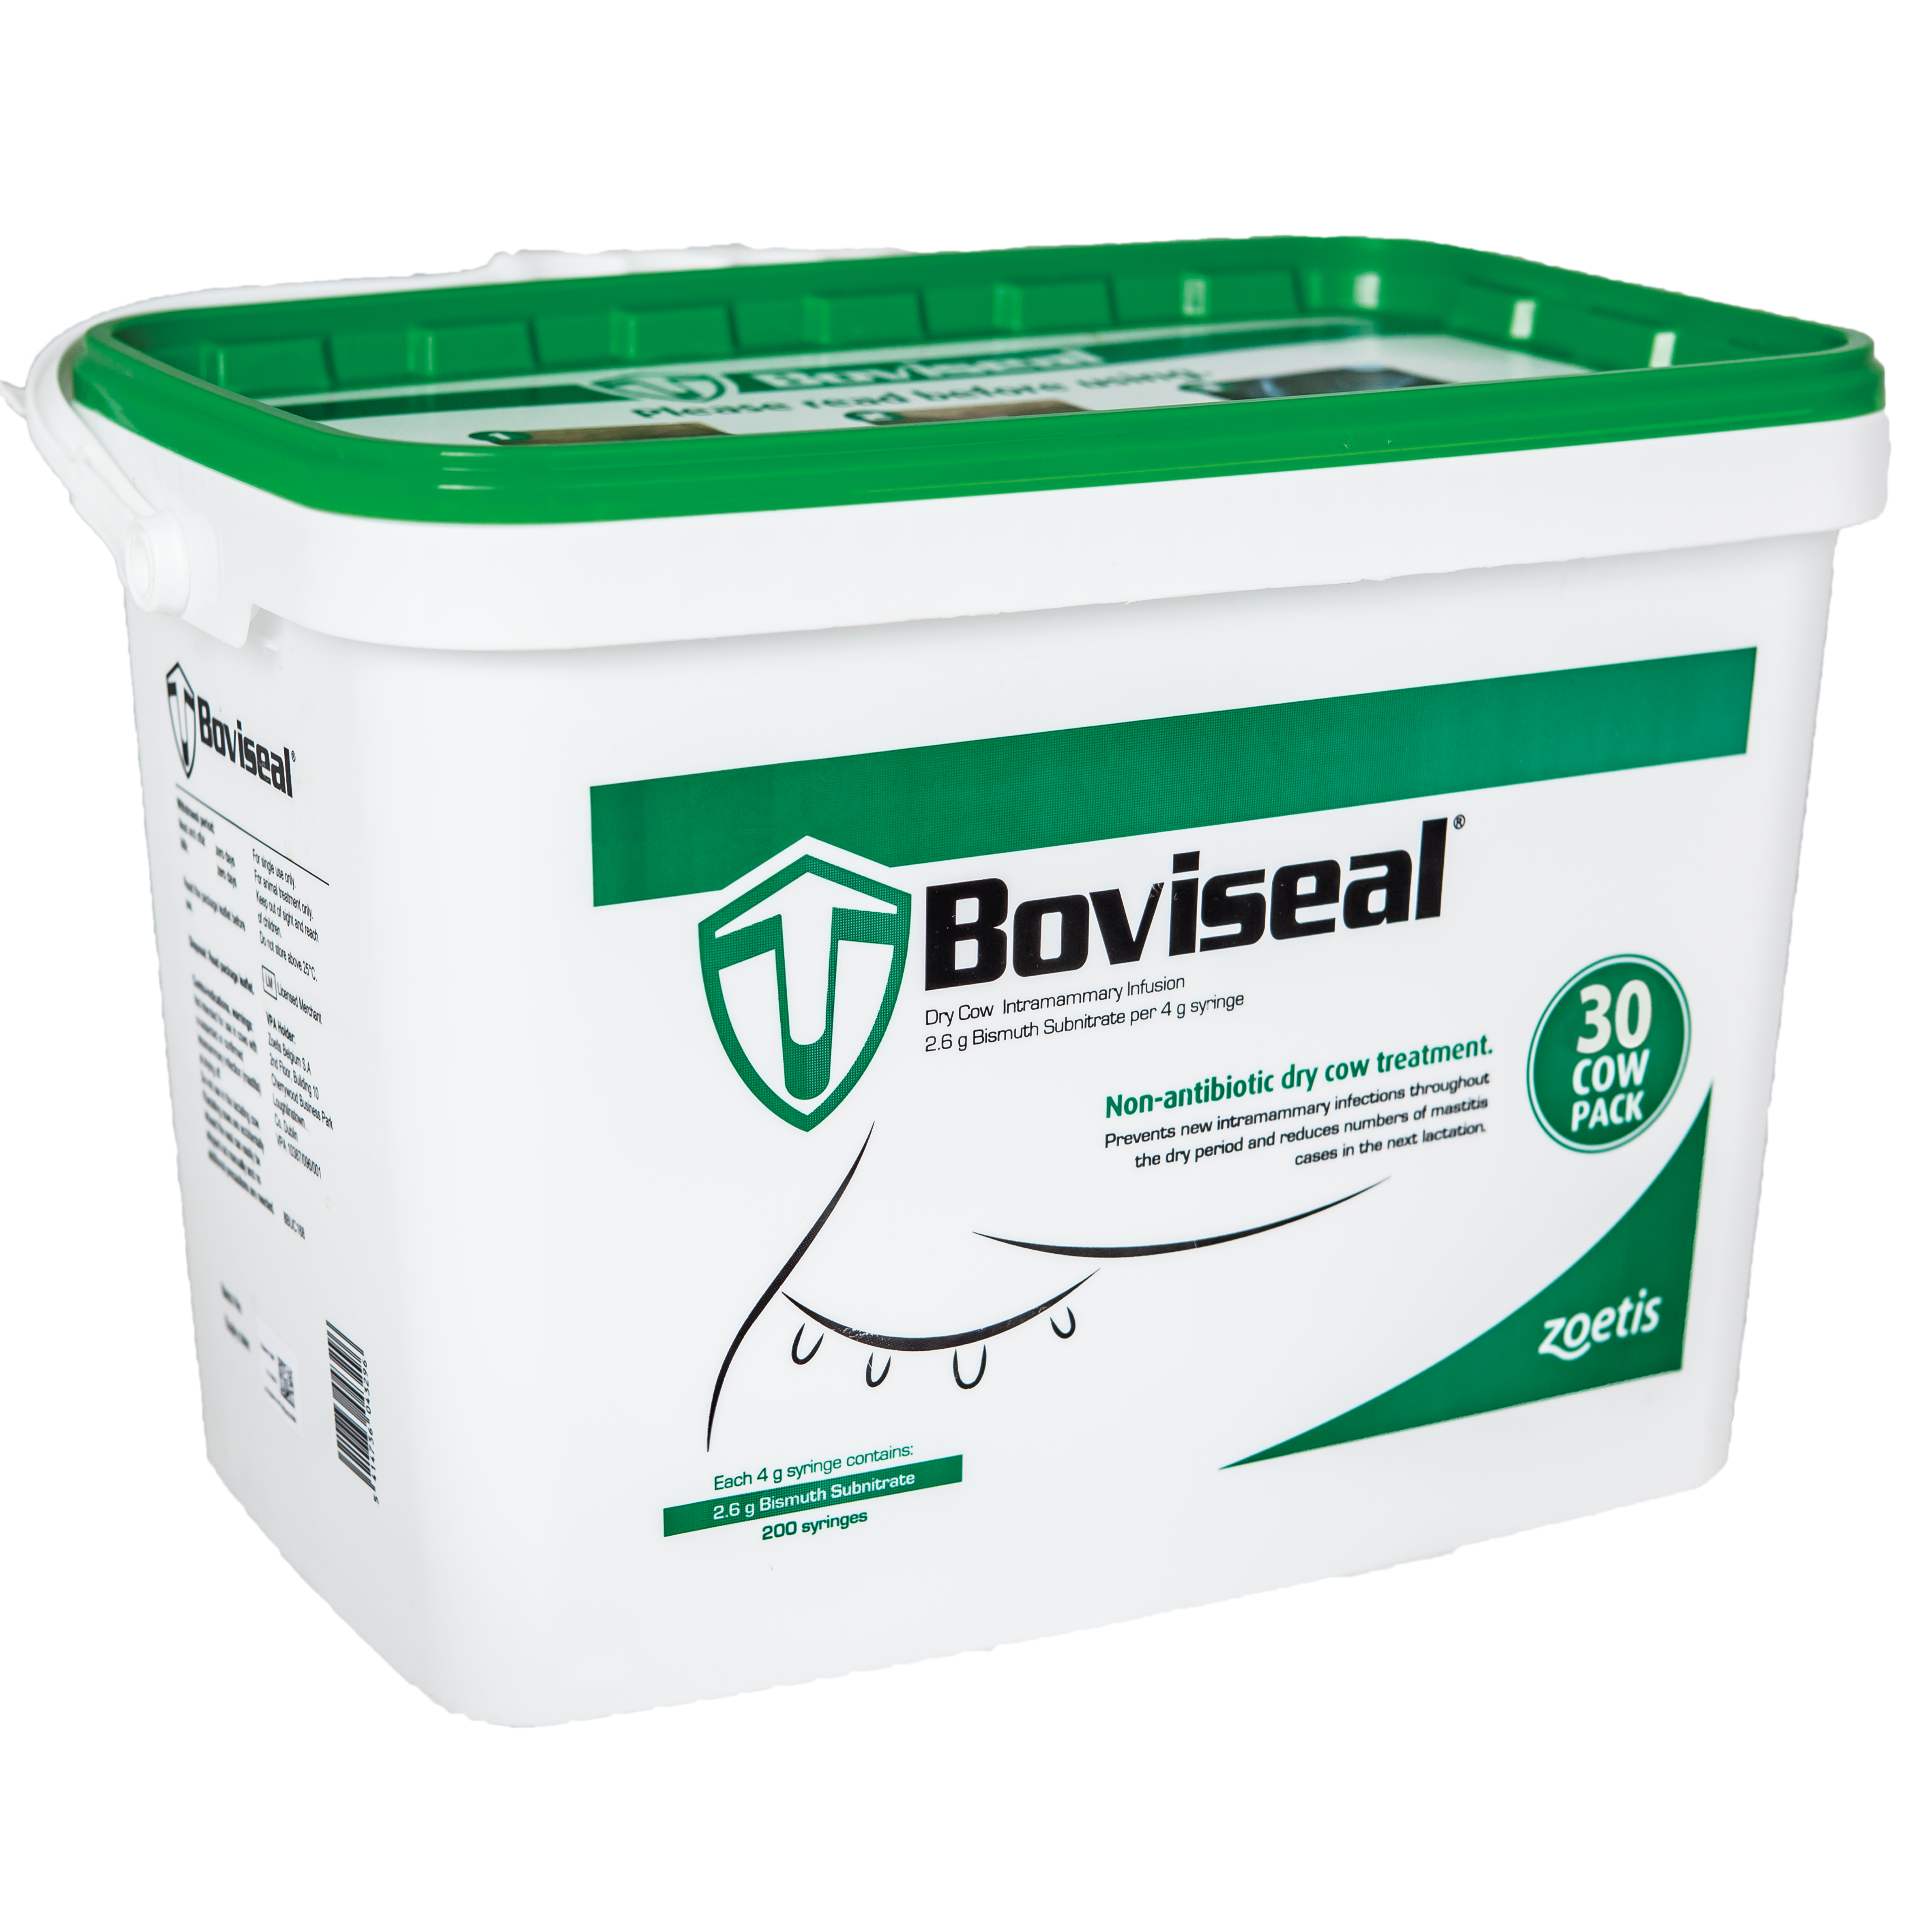 Boviseal Dry Cow Intramammary Infusion